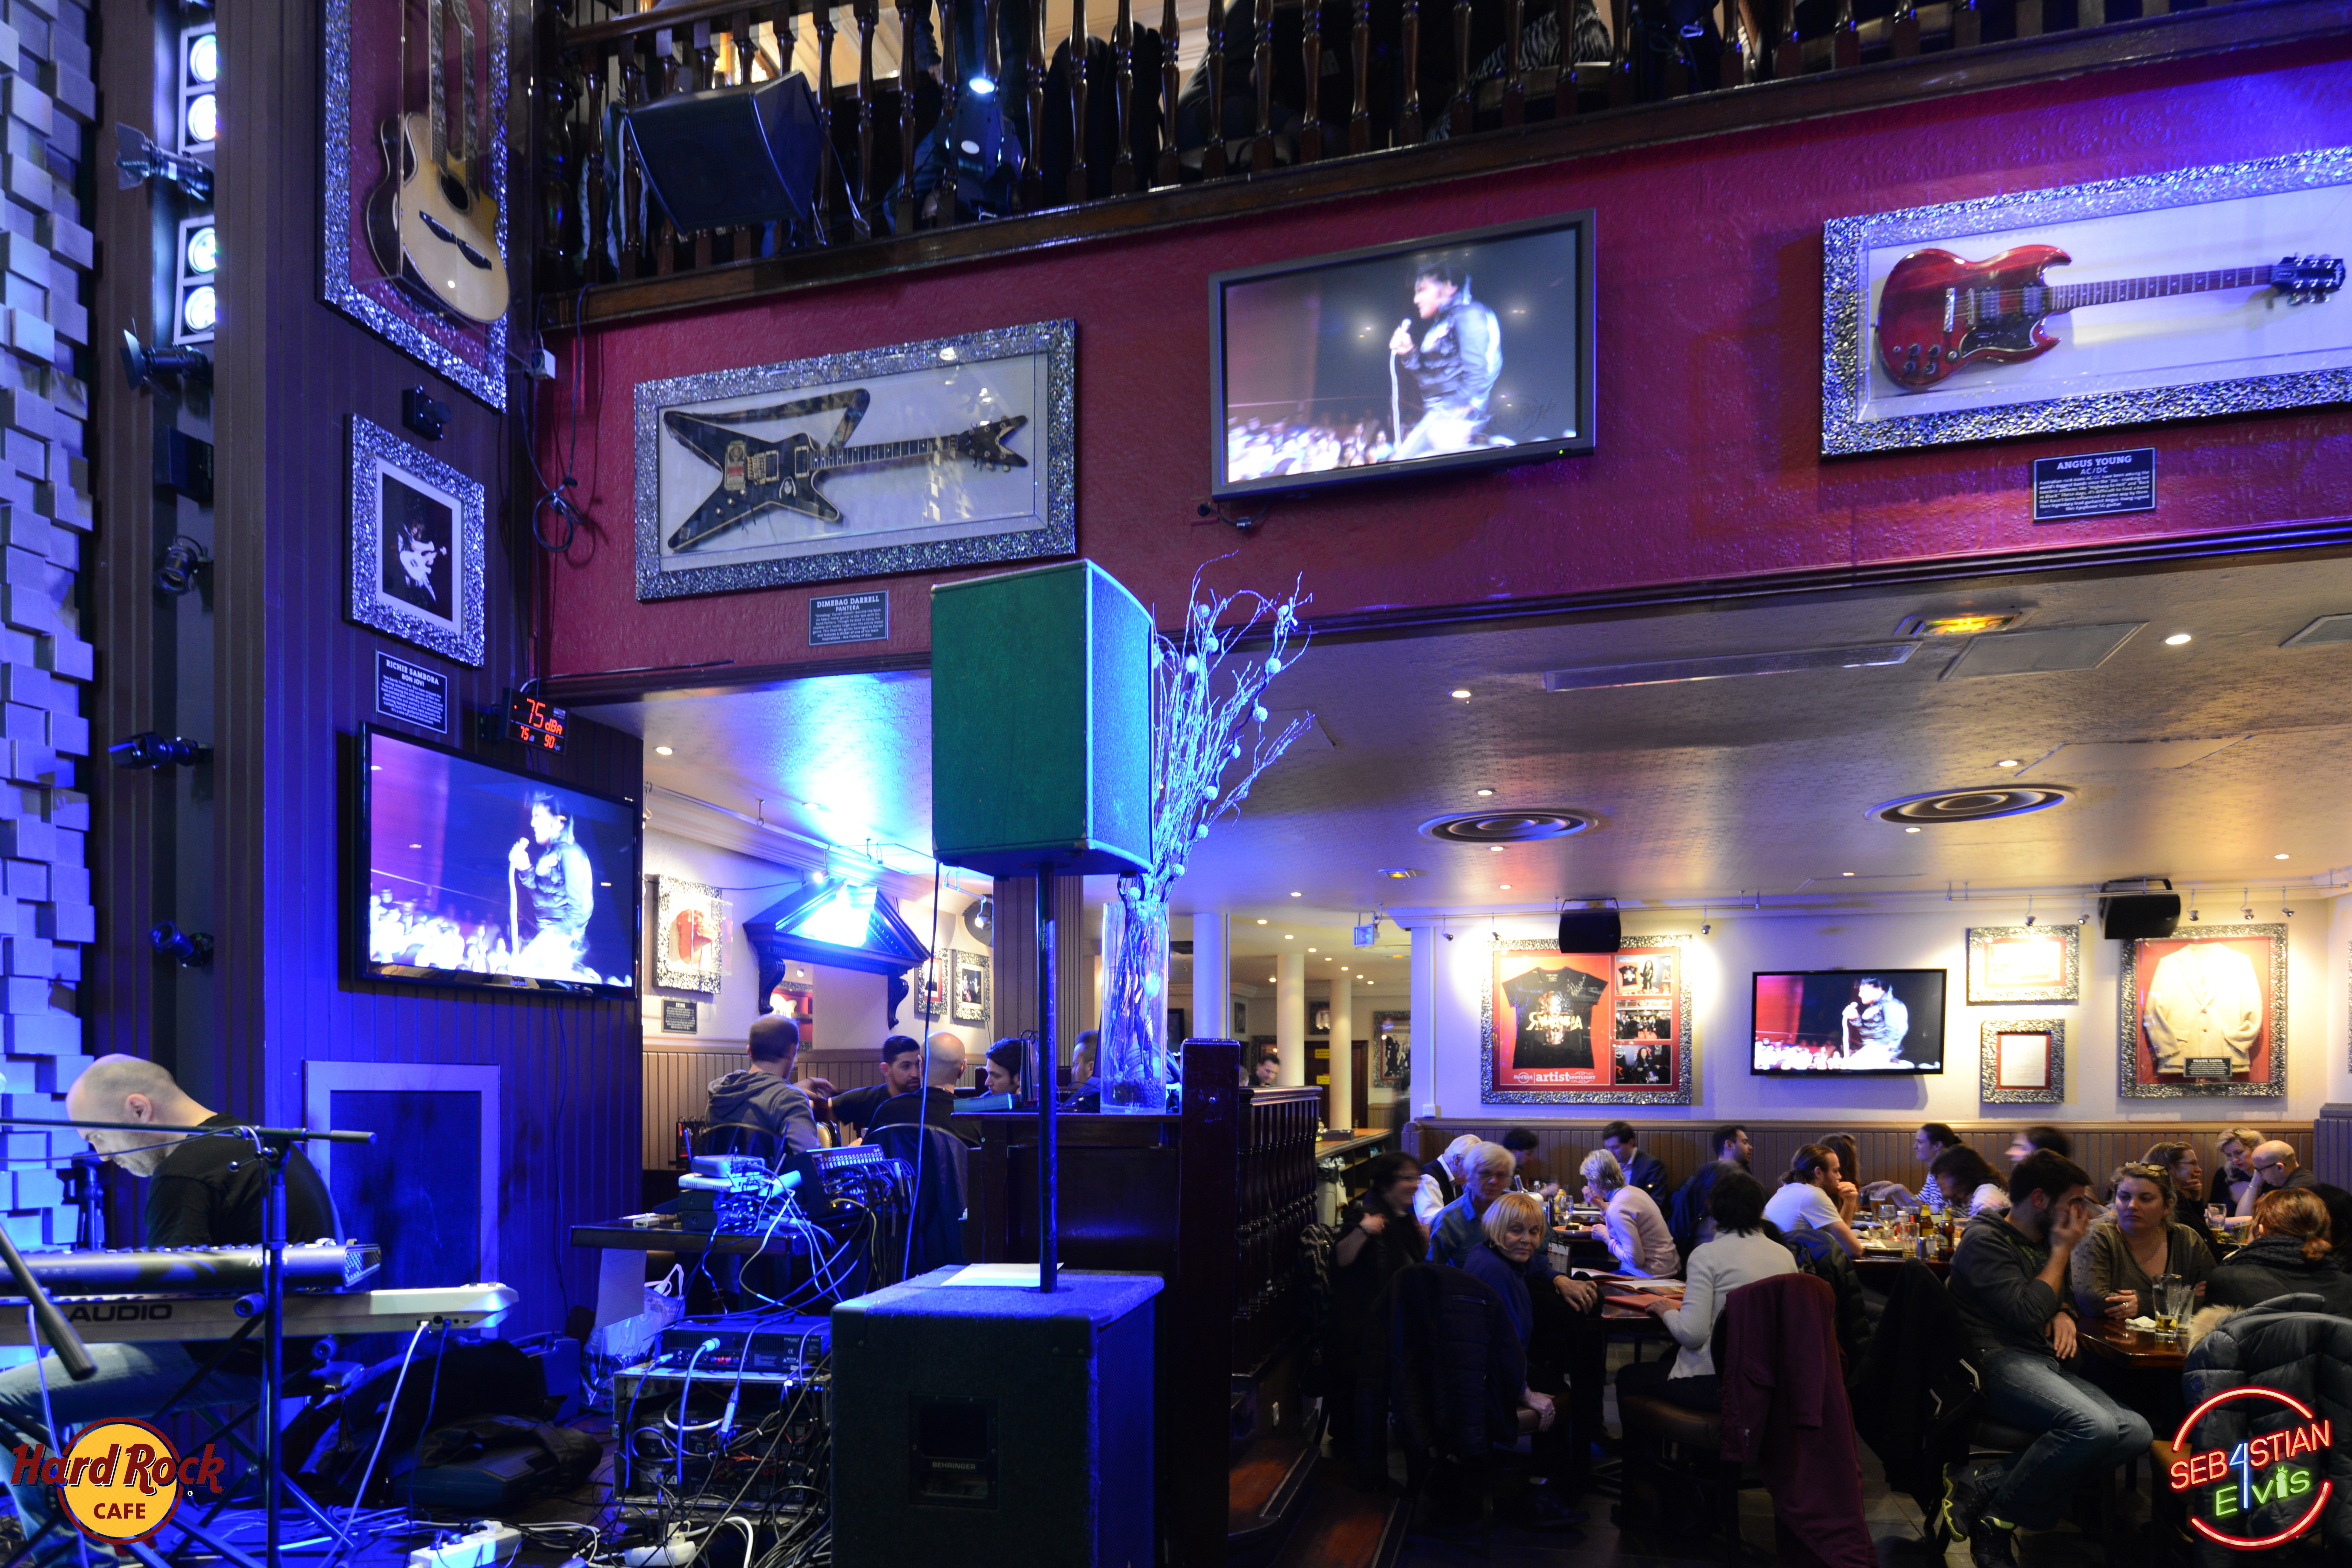 hard-rock-cafe-paris-elvis-night-27 janvier-2016-sebastian-for-elvis-facebook-memorial-show-0250